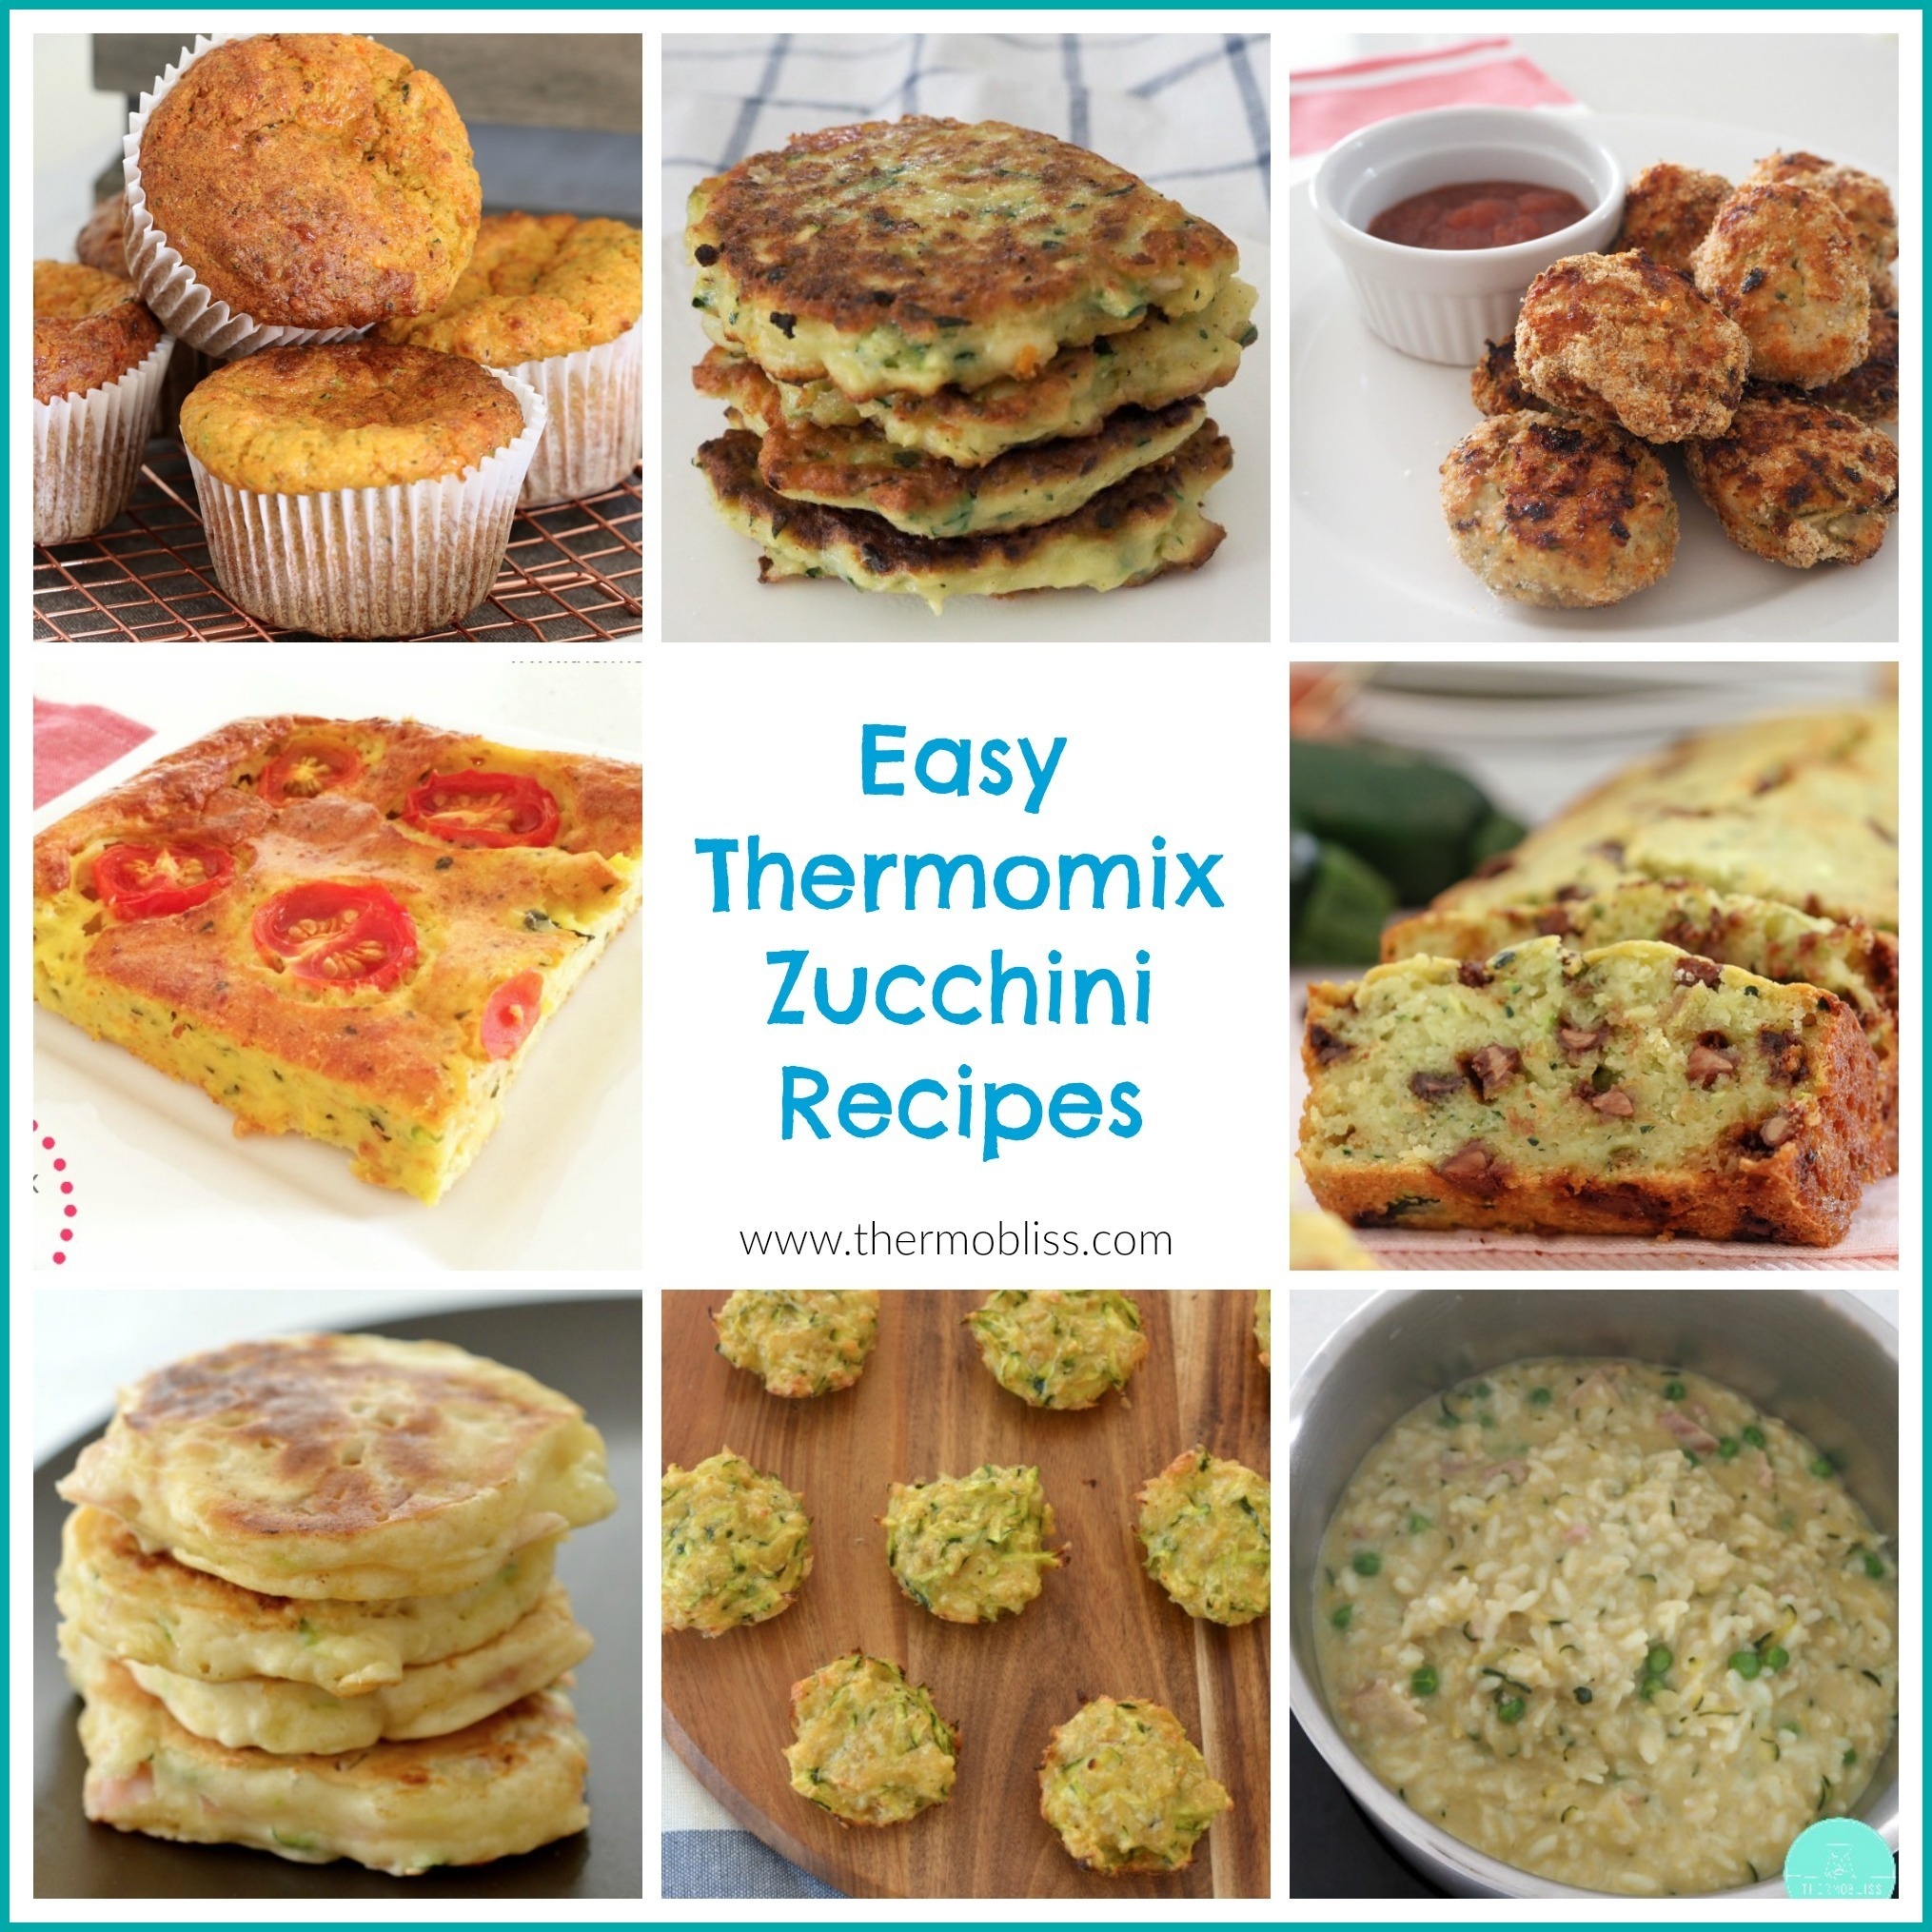 Thermomix Zucchini Recipes